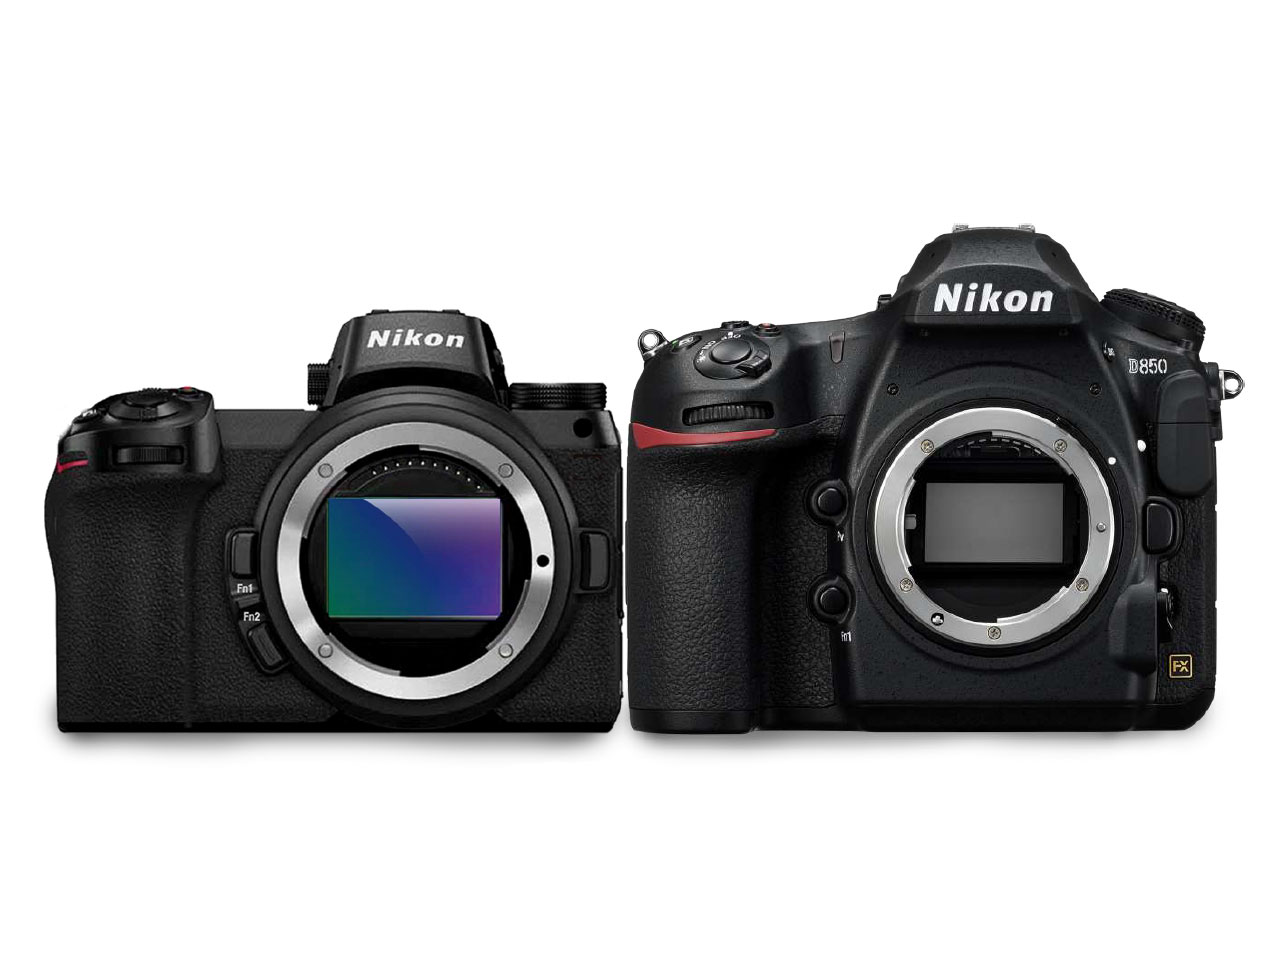 Things are heating up in the full-frame mirrorless camera market